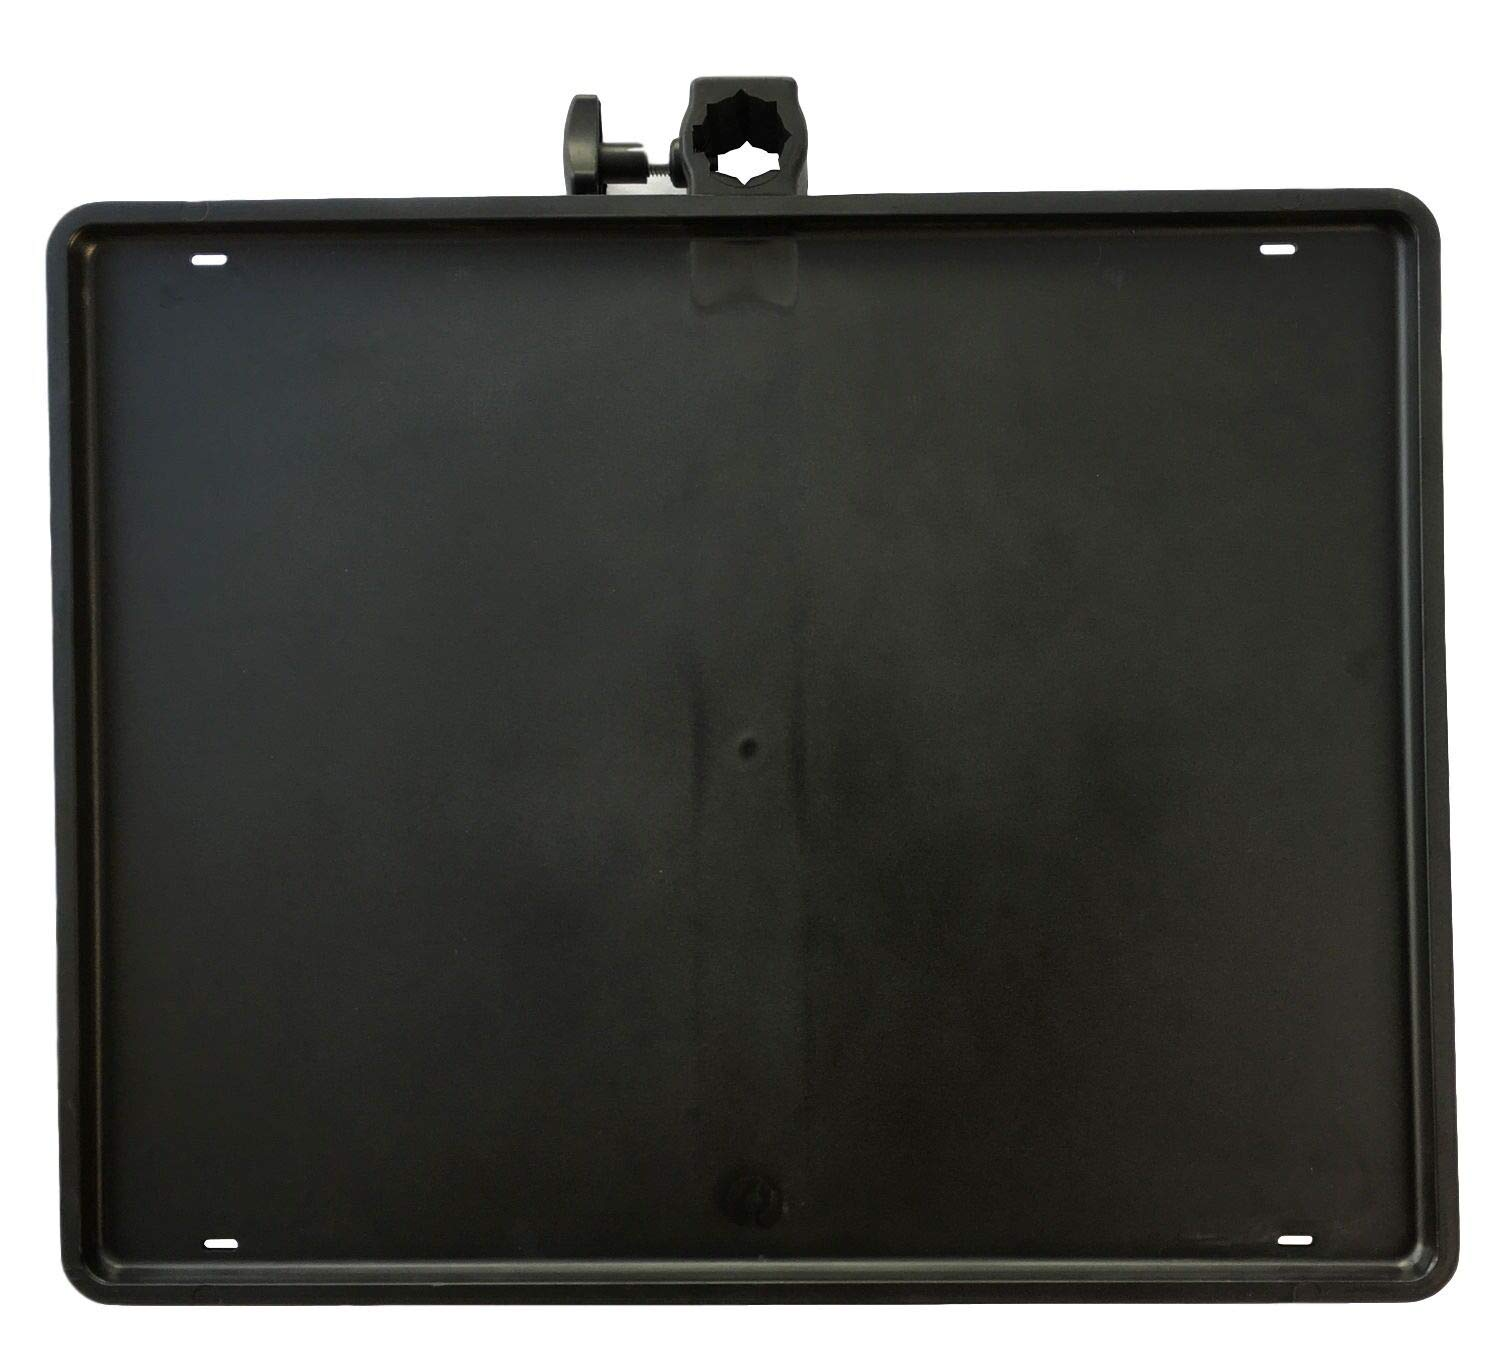 UK Angling Supplies Seatbox Side Tray Fits Both Round /& Square Seat Box Legs